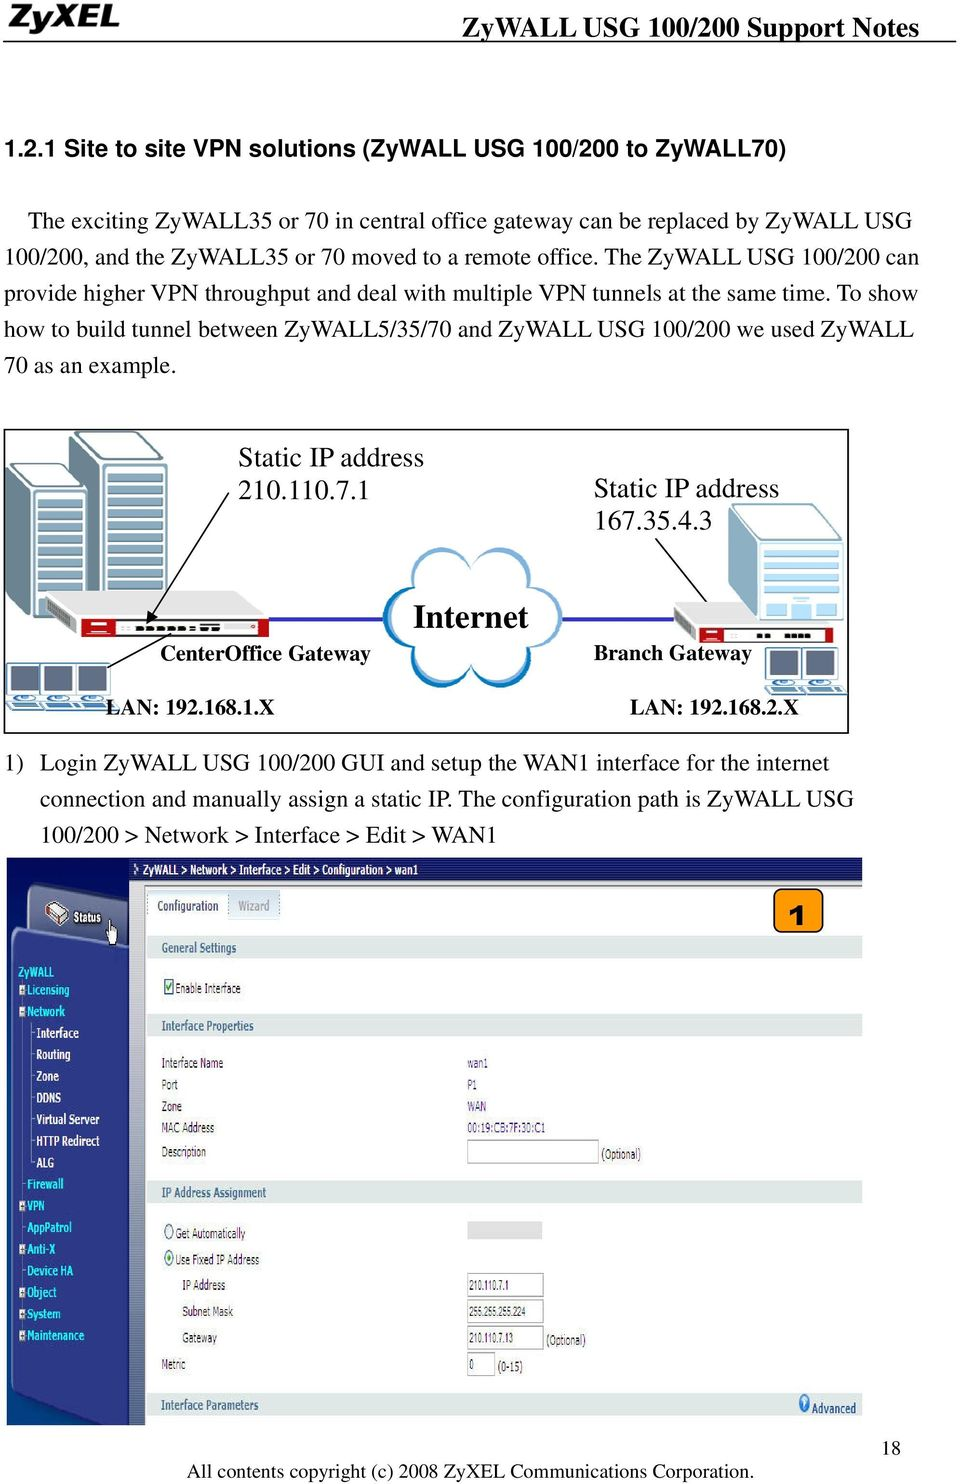 ZyWALL USG 100/200  Unified Security Gateway  Support Notes